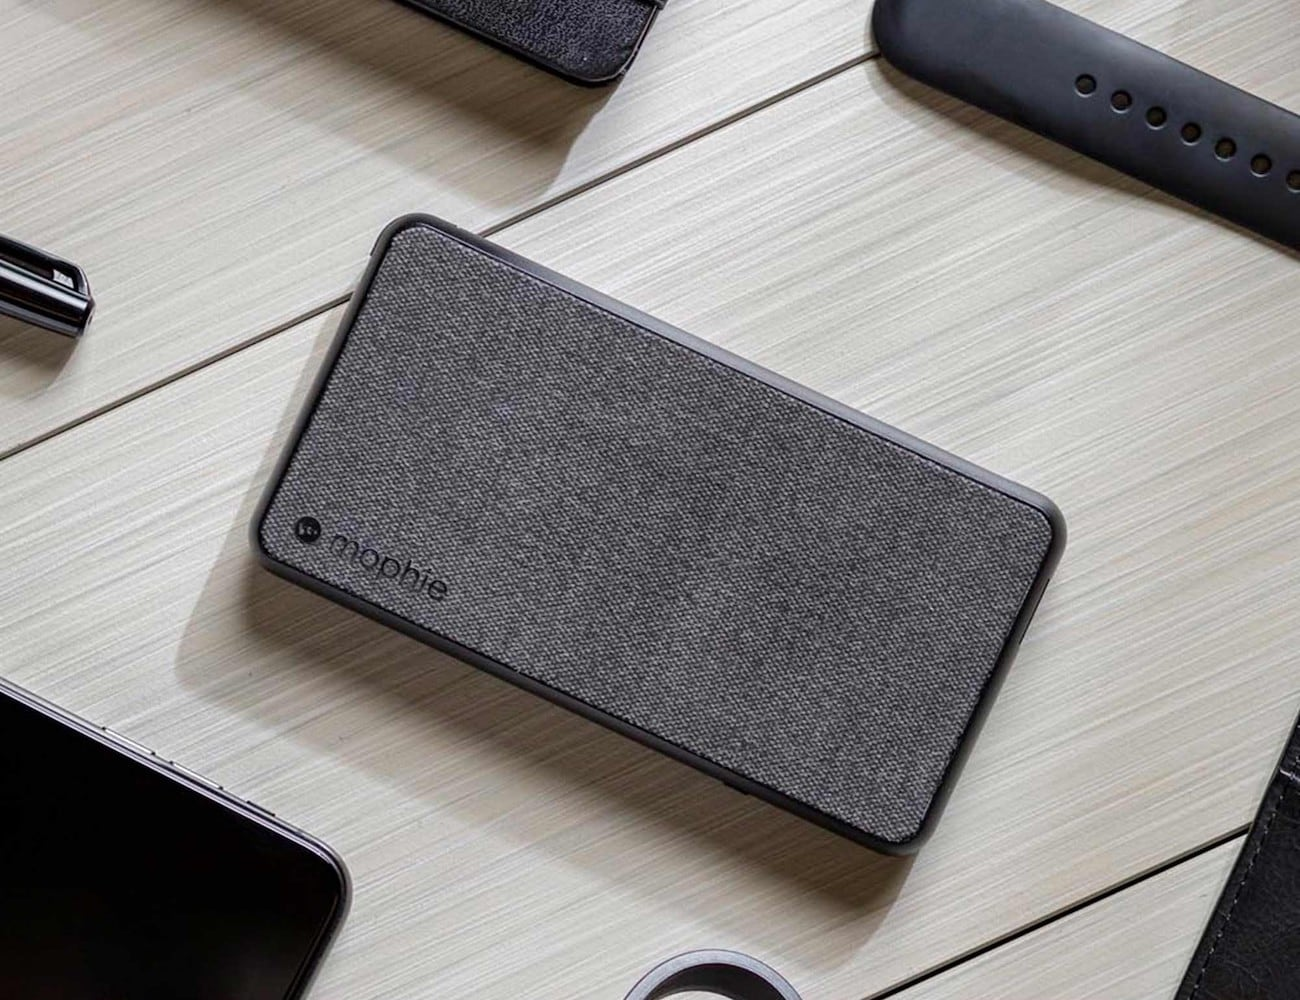 mophie powerstation plus Fabric Power Bank has 6,040 mAh of battery power